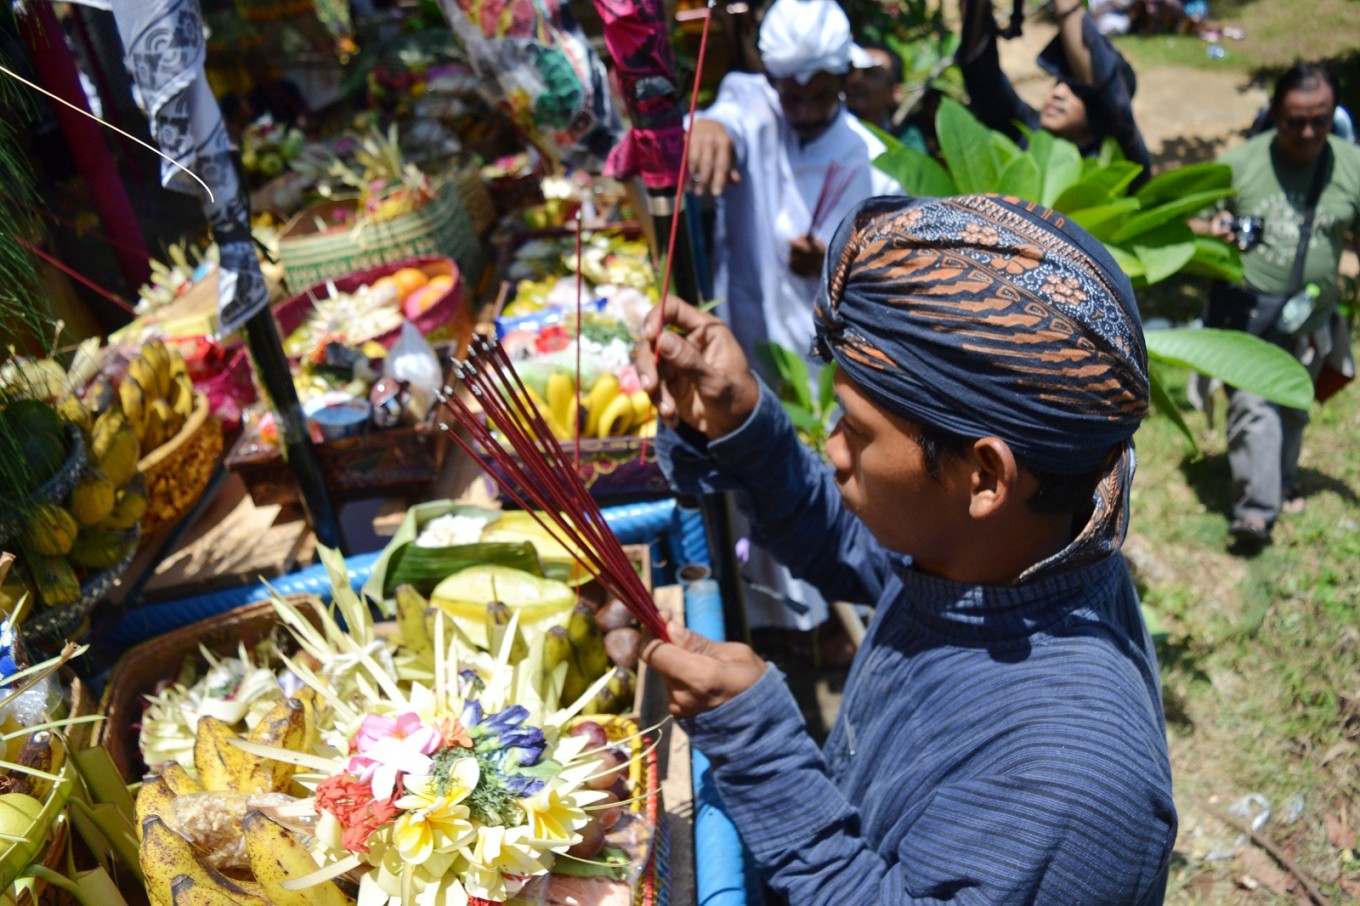 Incense sticks are added to offerings as part of the ritual.